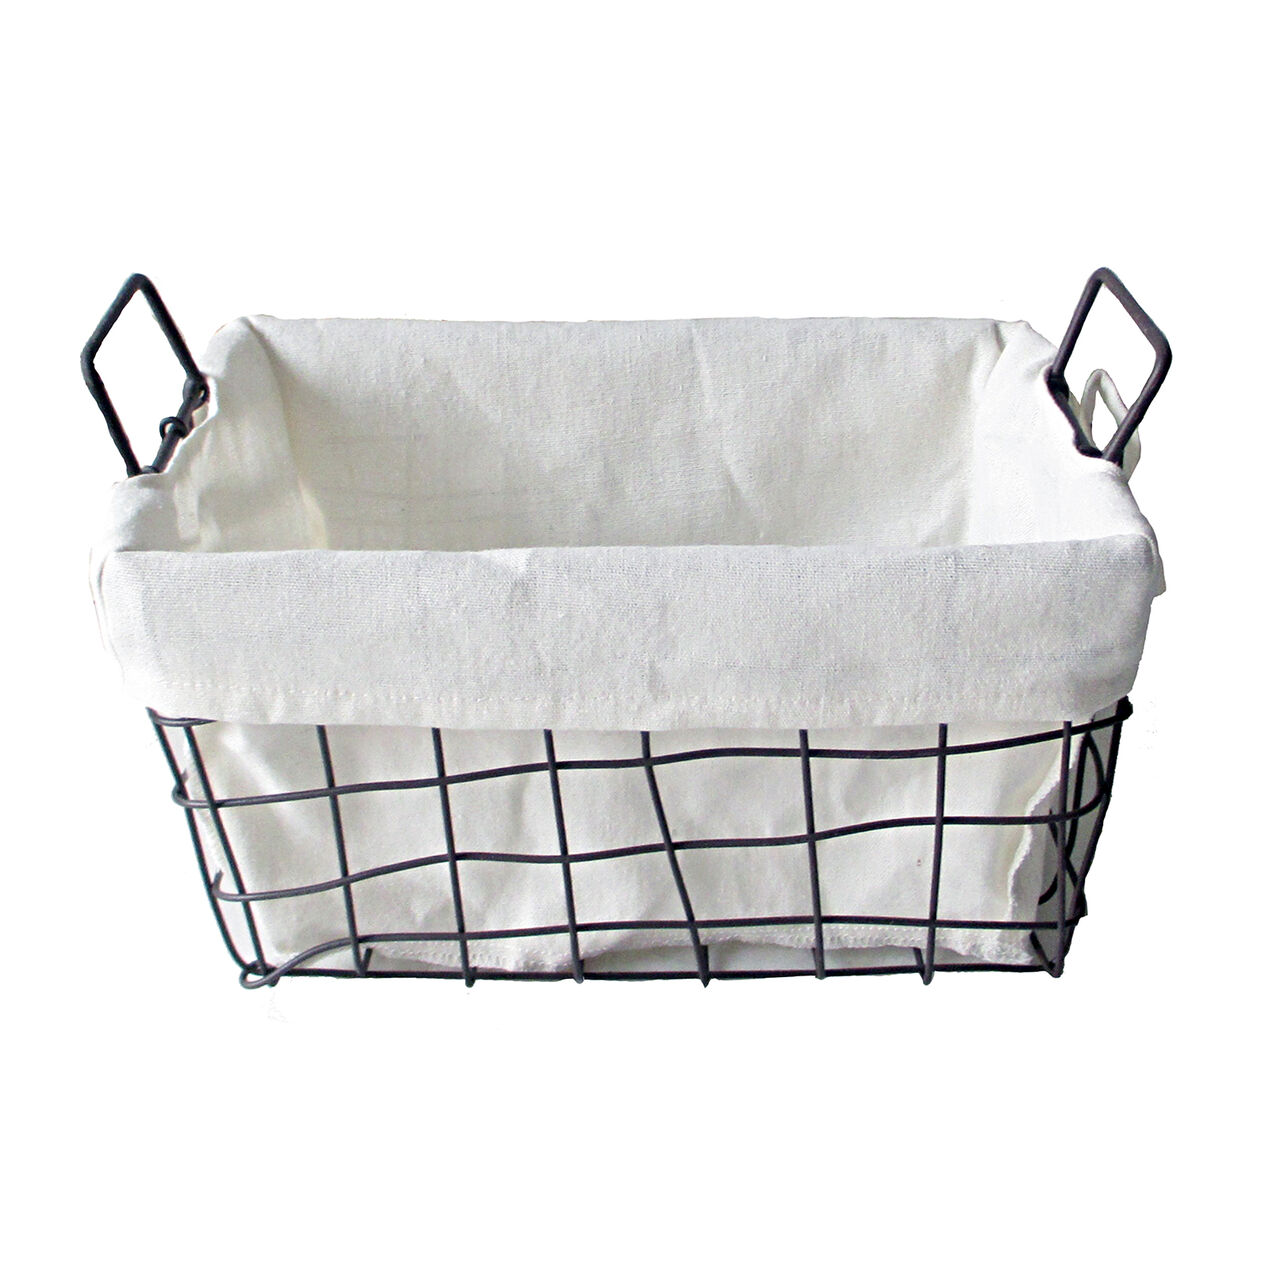 White wicker baskets with handle - Picture Of Rectangular Woven Metal Wire Basket With Handles Large